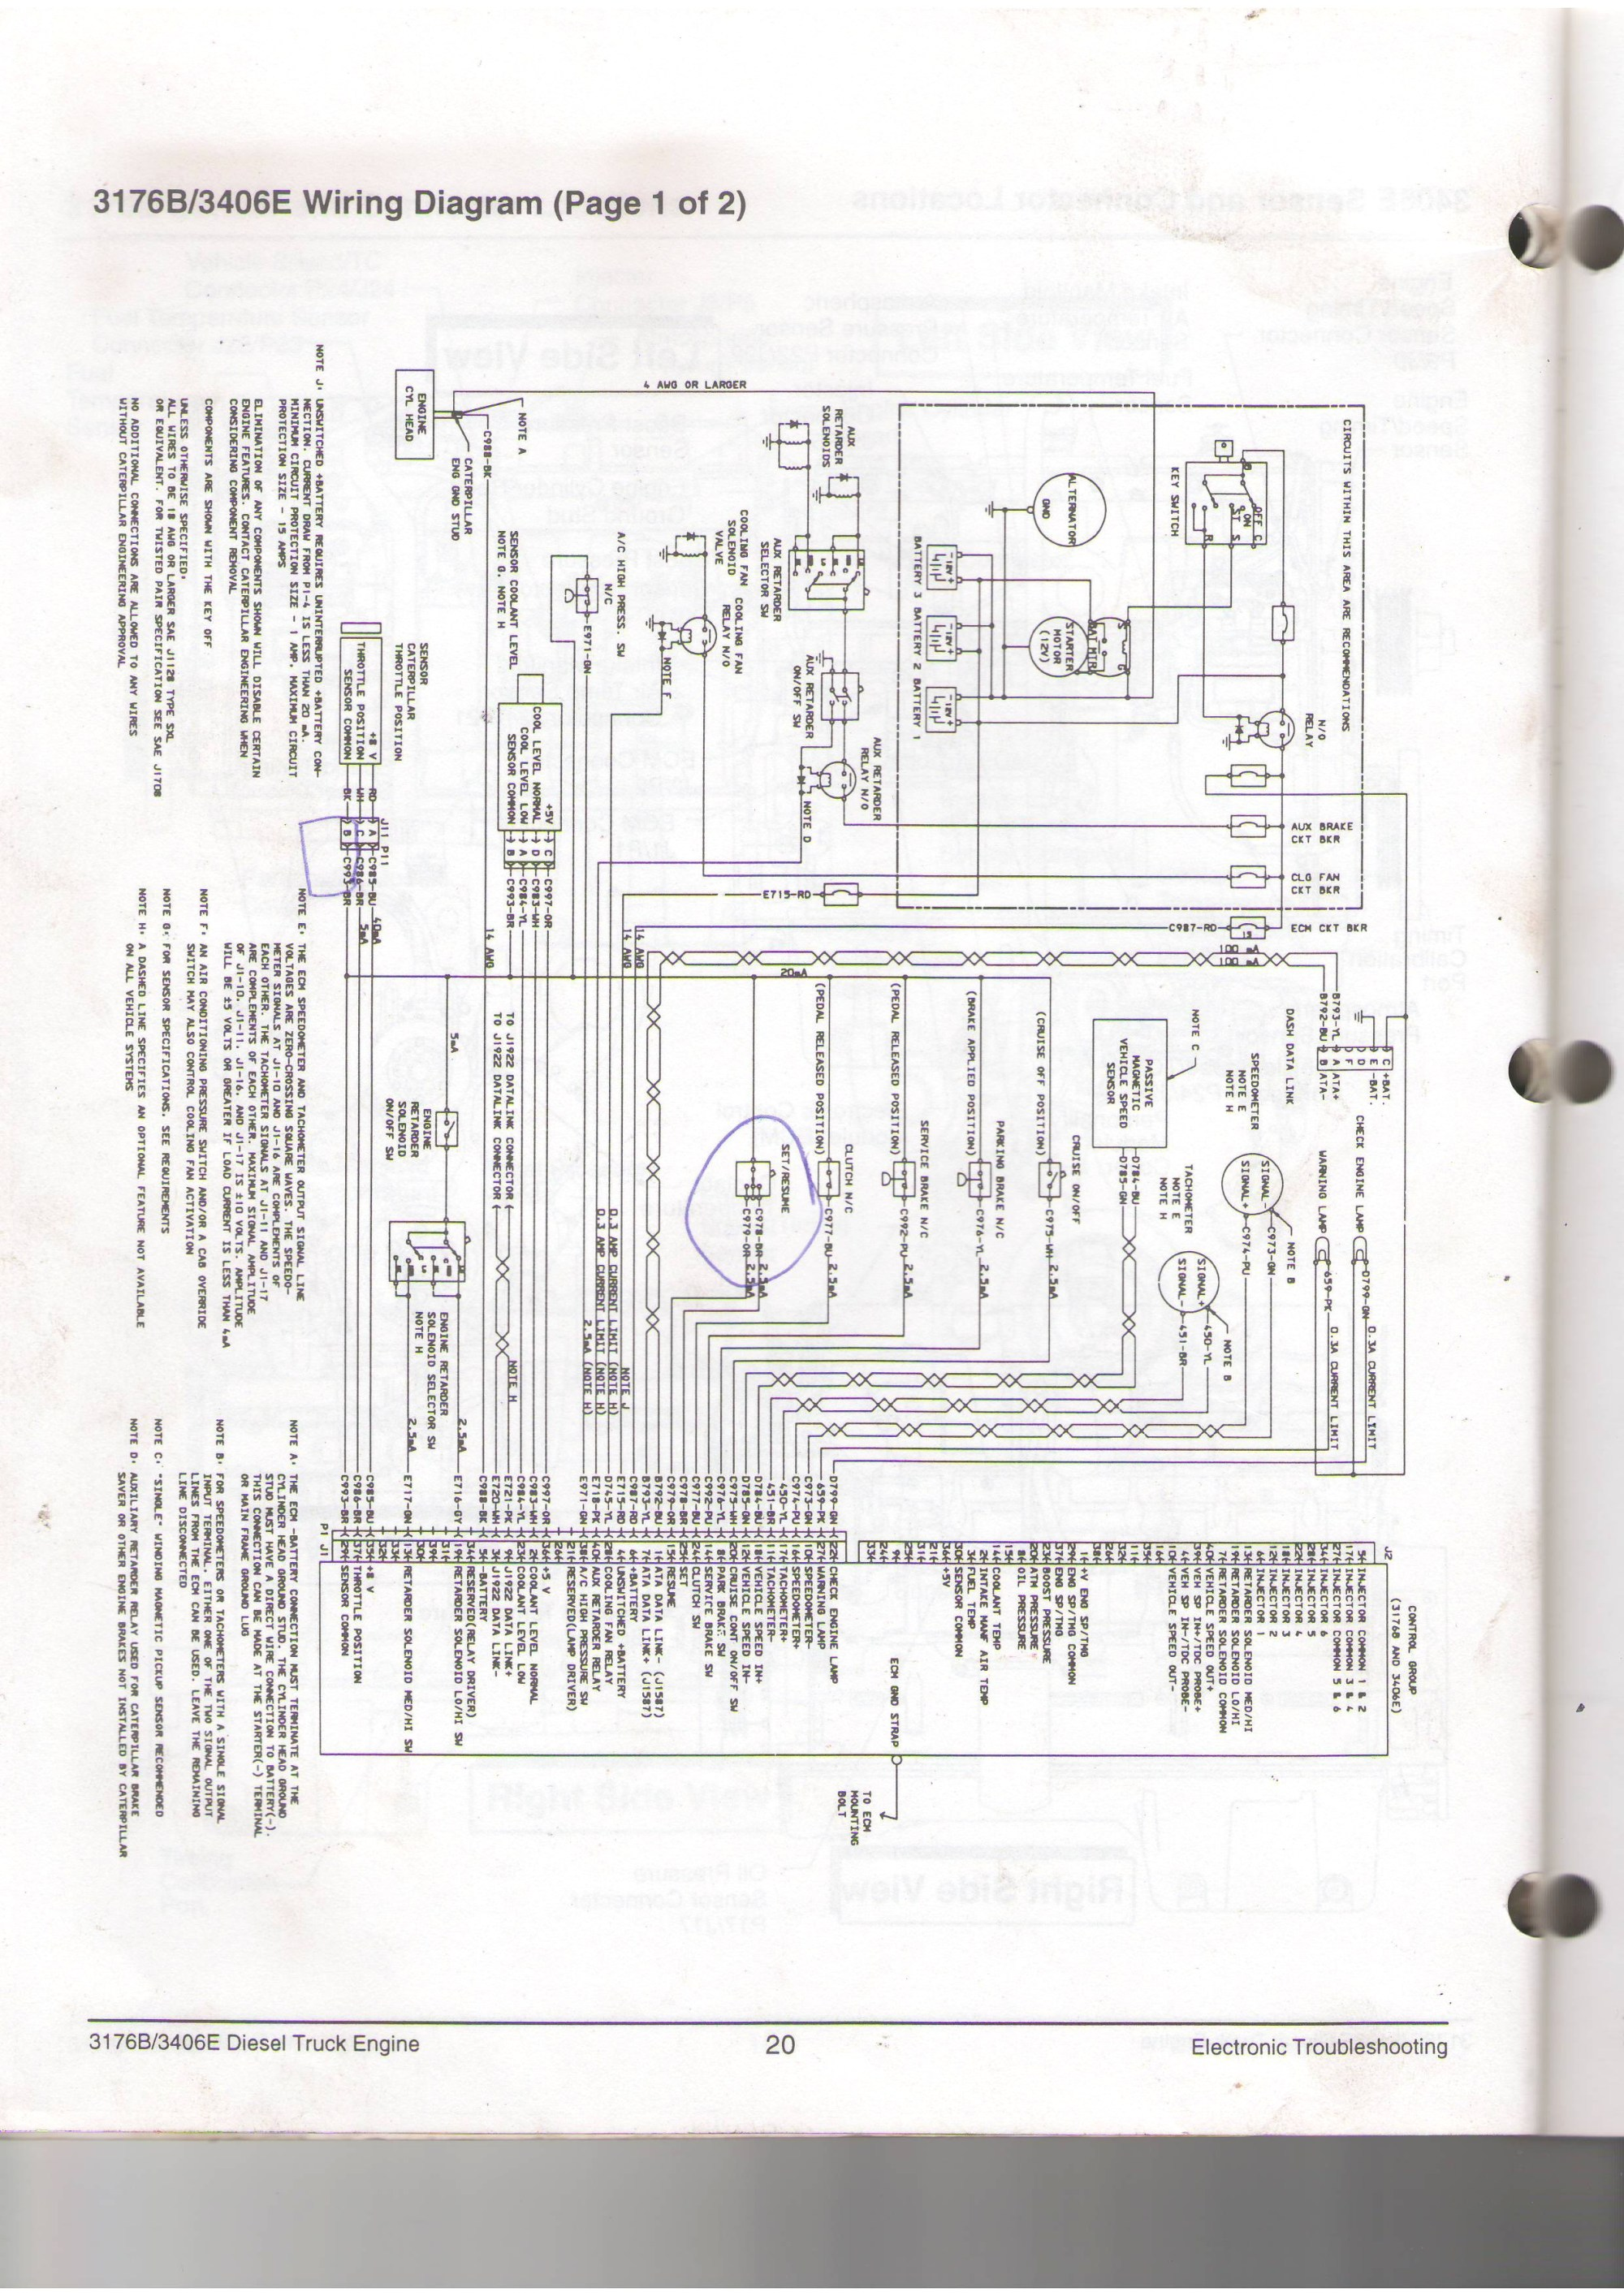 hight resolution of cat c15 fan wire diagram